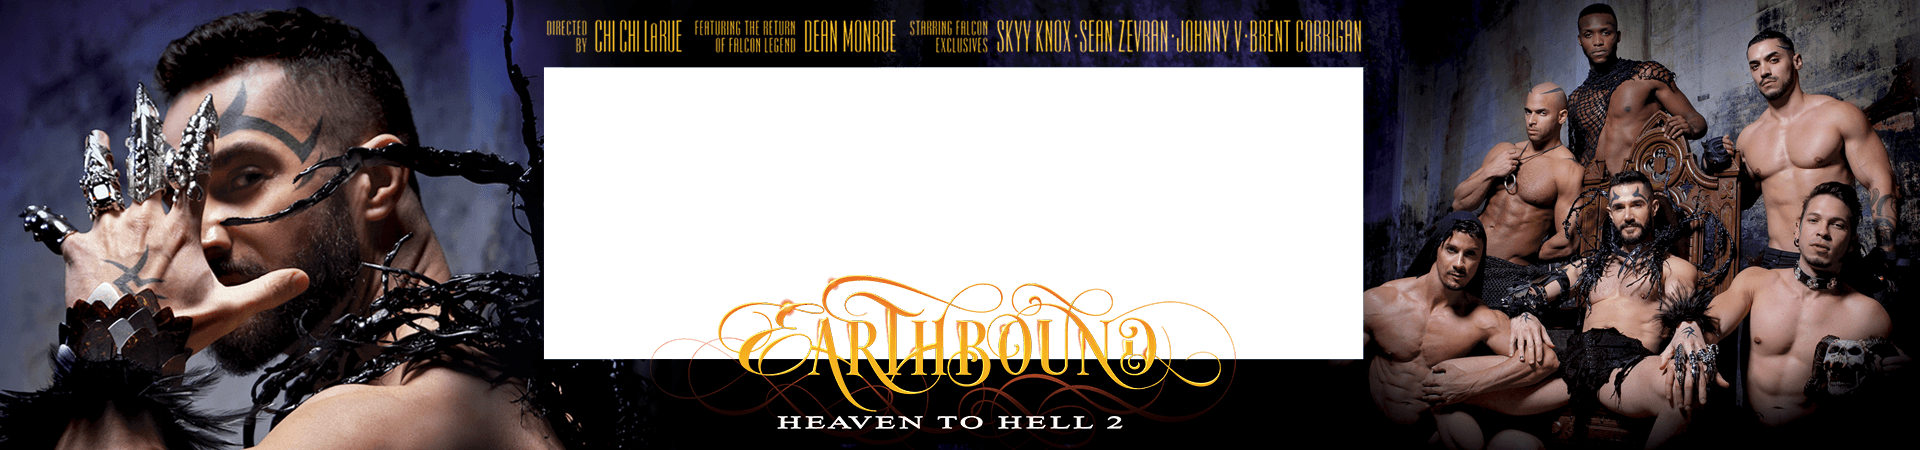 Earthbound: Heaven to Hell 2